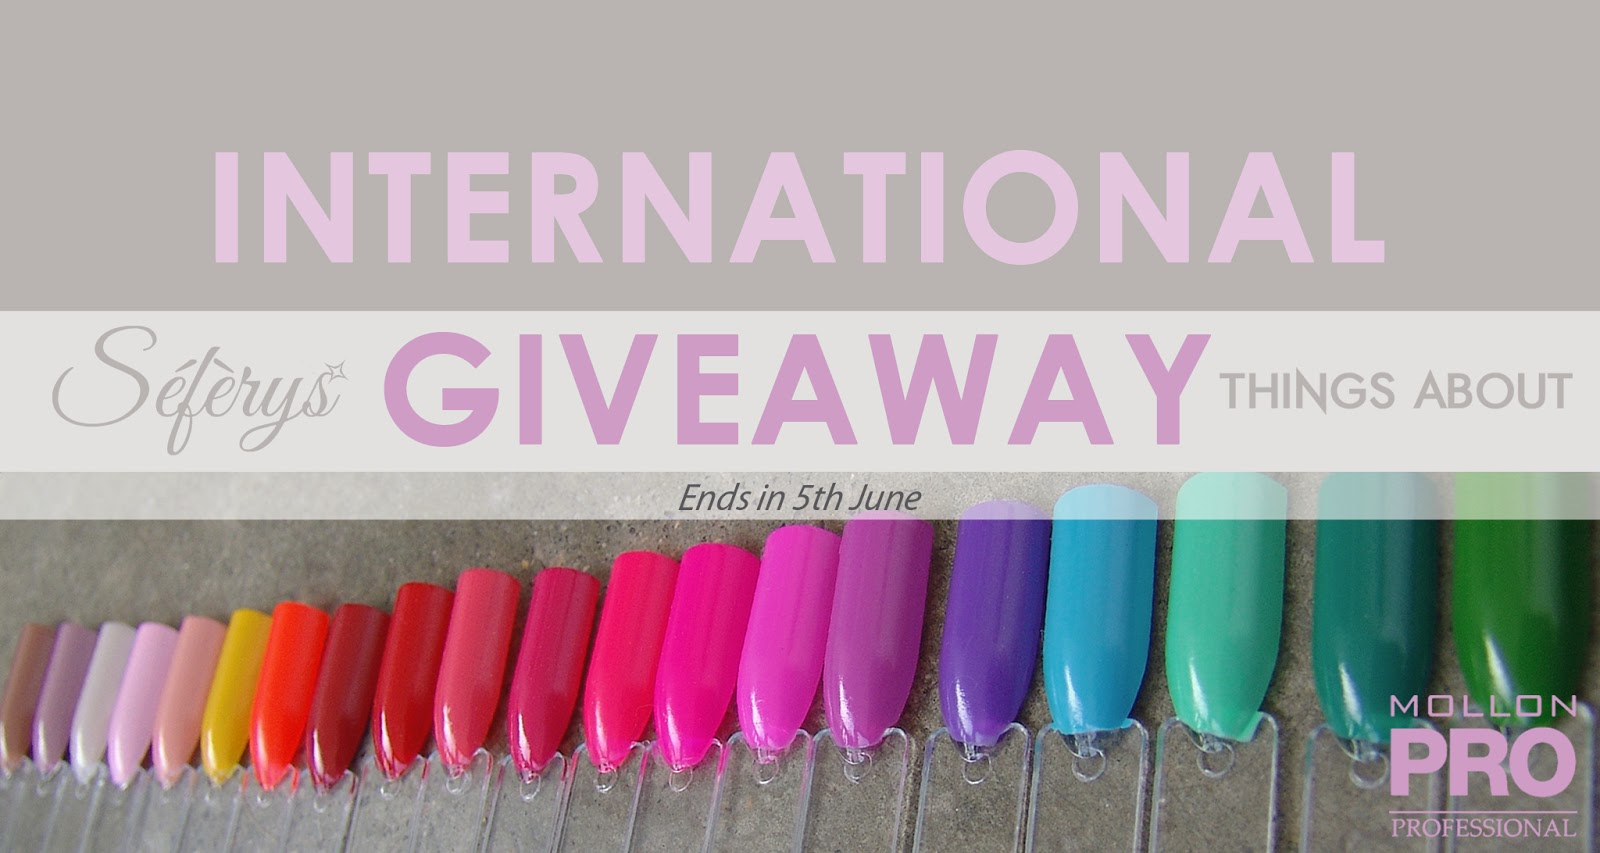 http://www.seferys.com/2014/05/international-giveaway-with-things.html